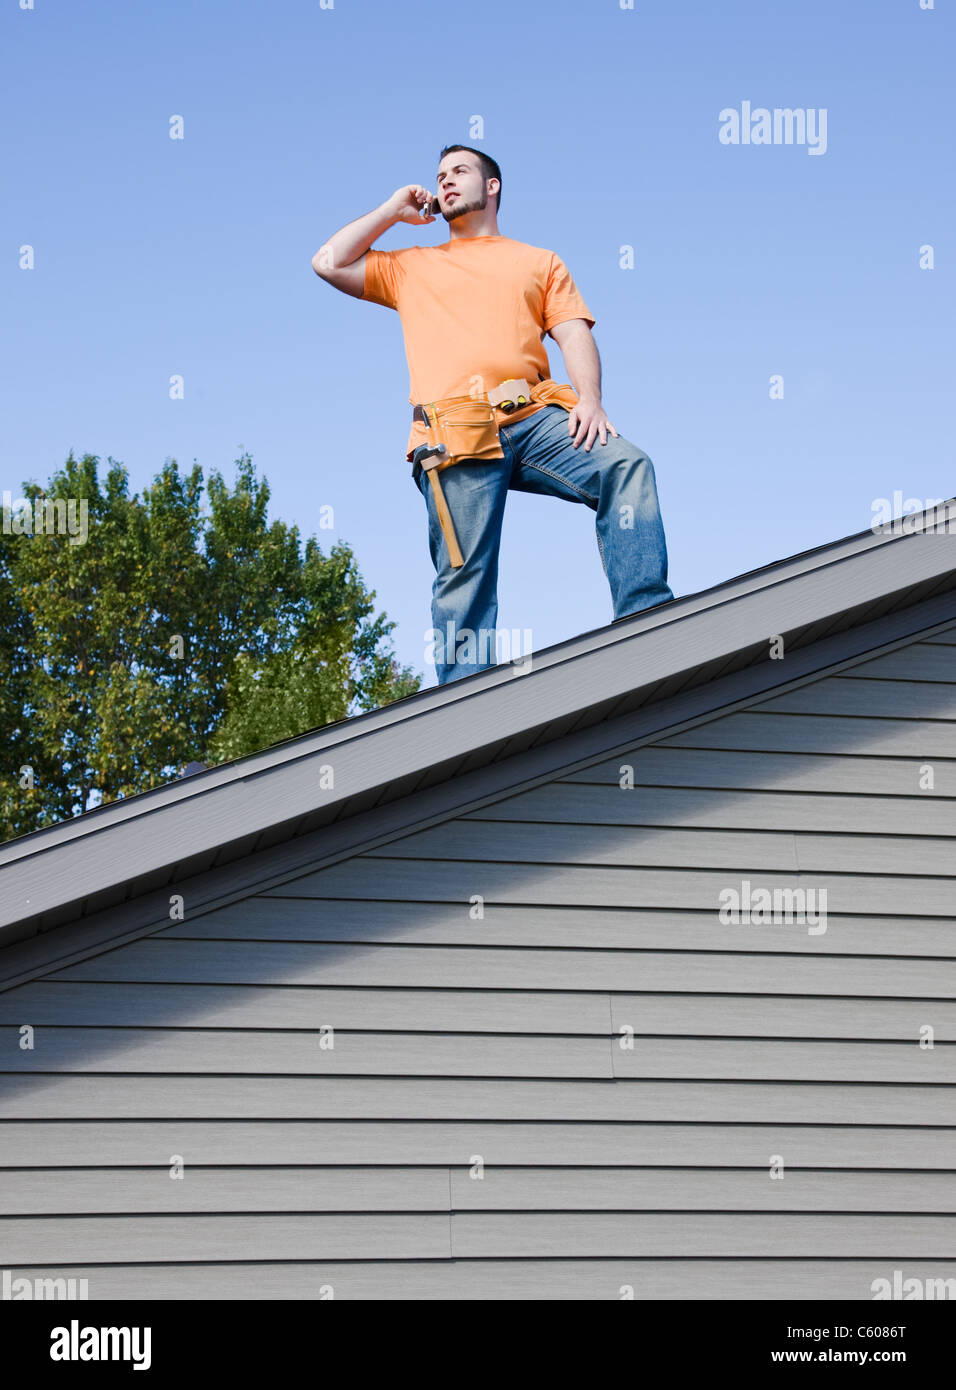 USA, Illinois, Metamora, Young worker standing on roof and talking via mobile phone - Stock Image